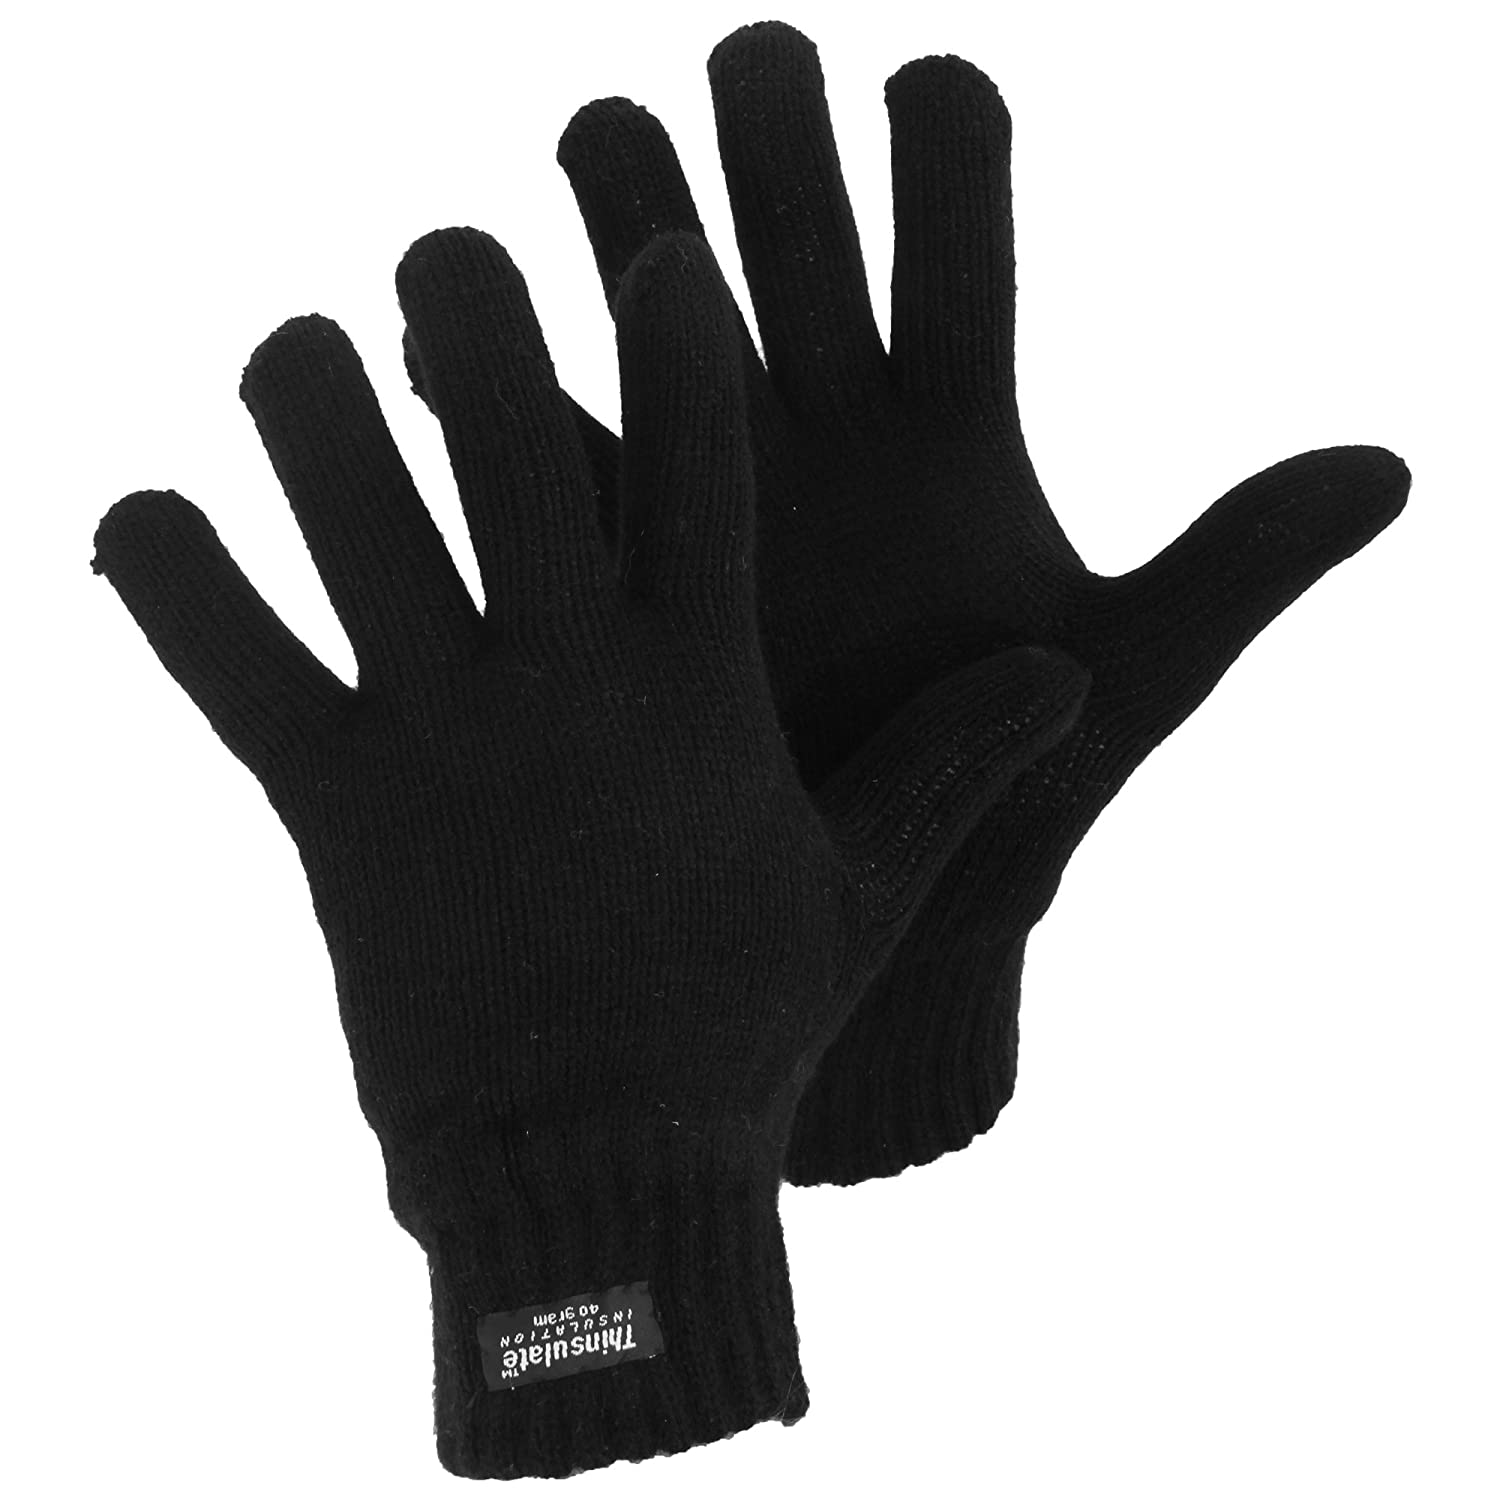 Womens/Ladies Thinsulate Thermal Knitted Winter Gloves UTGL572_1